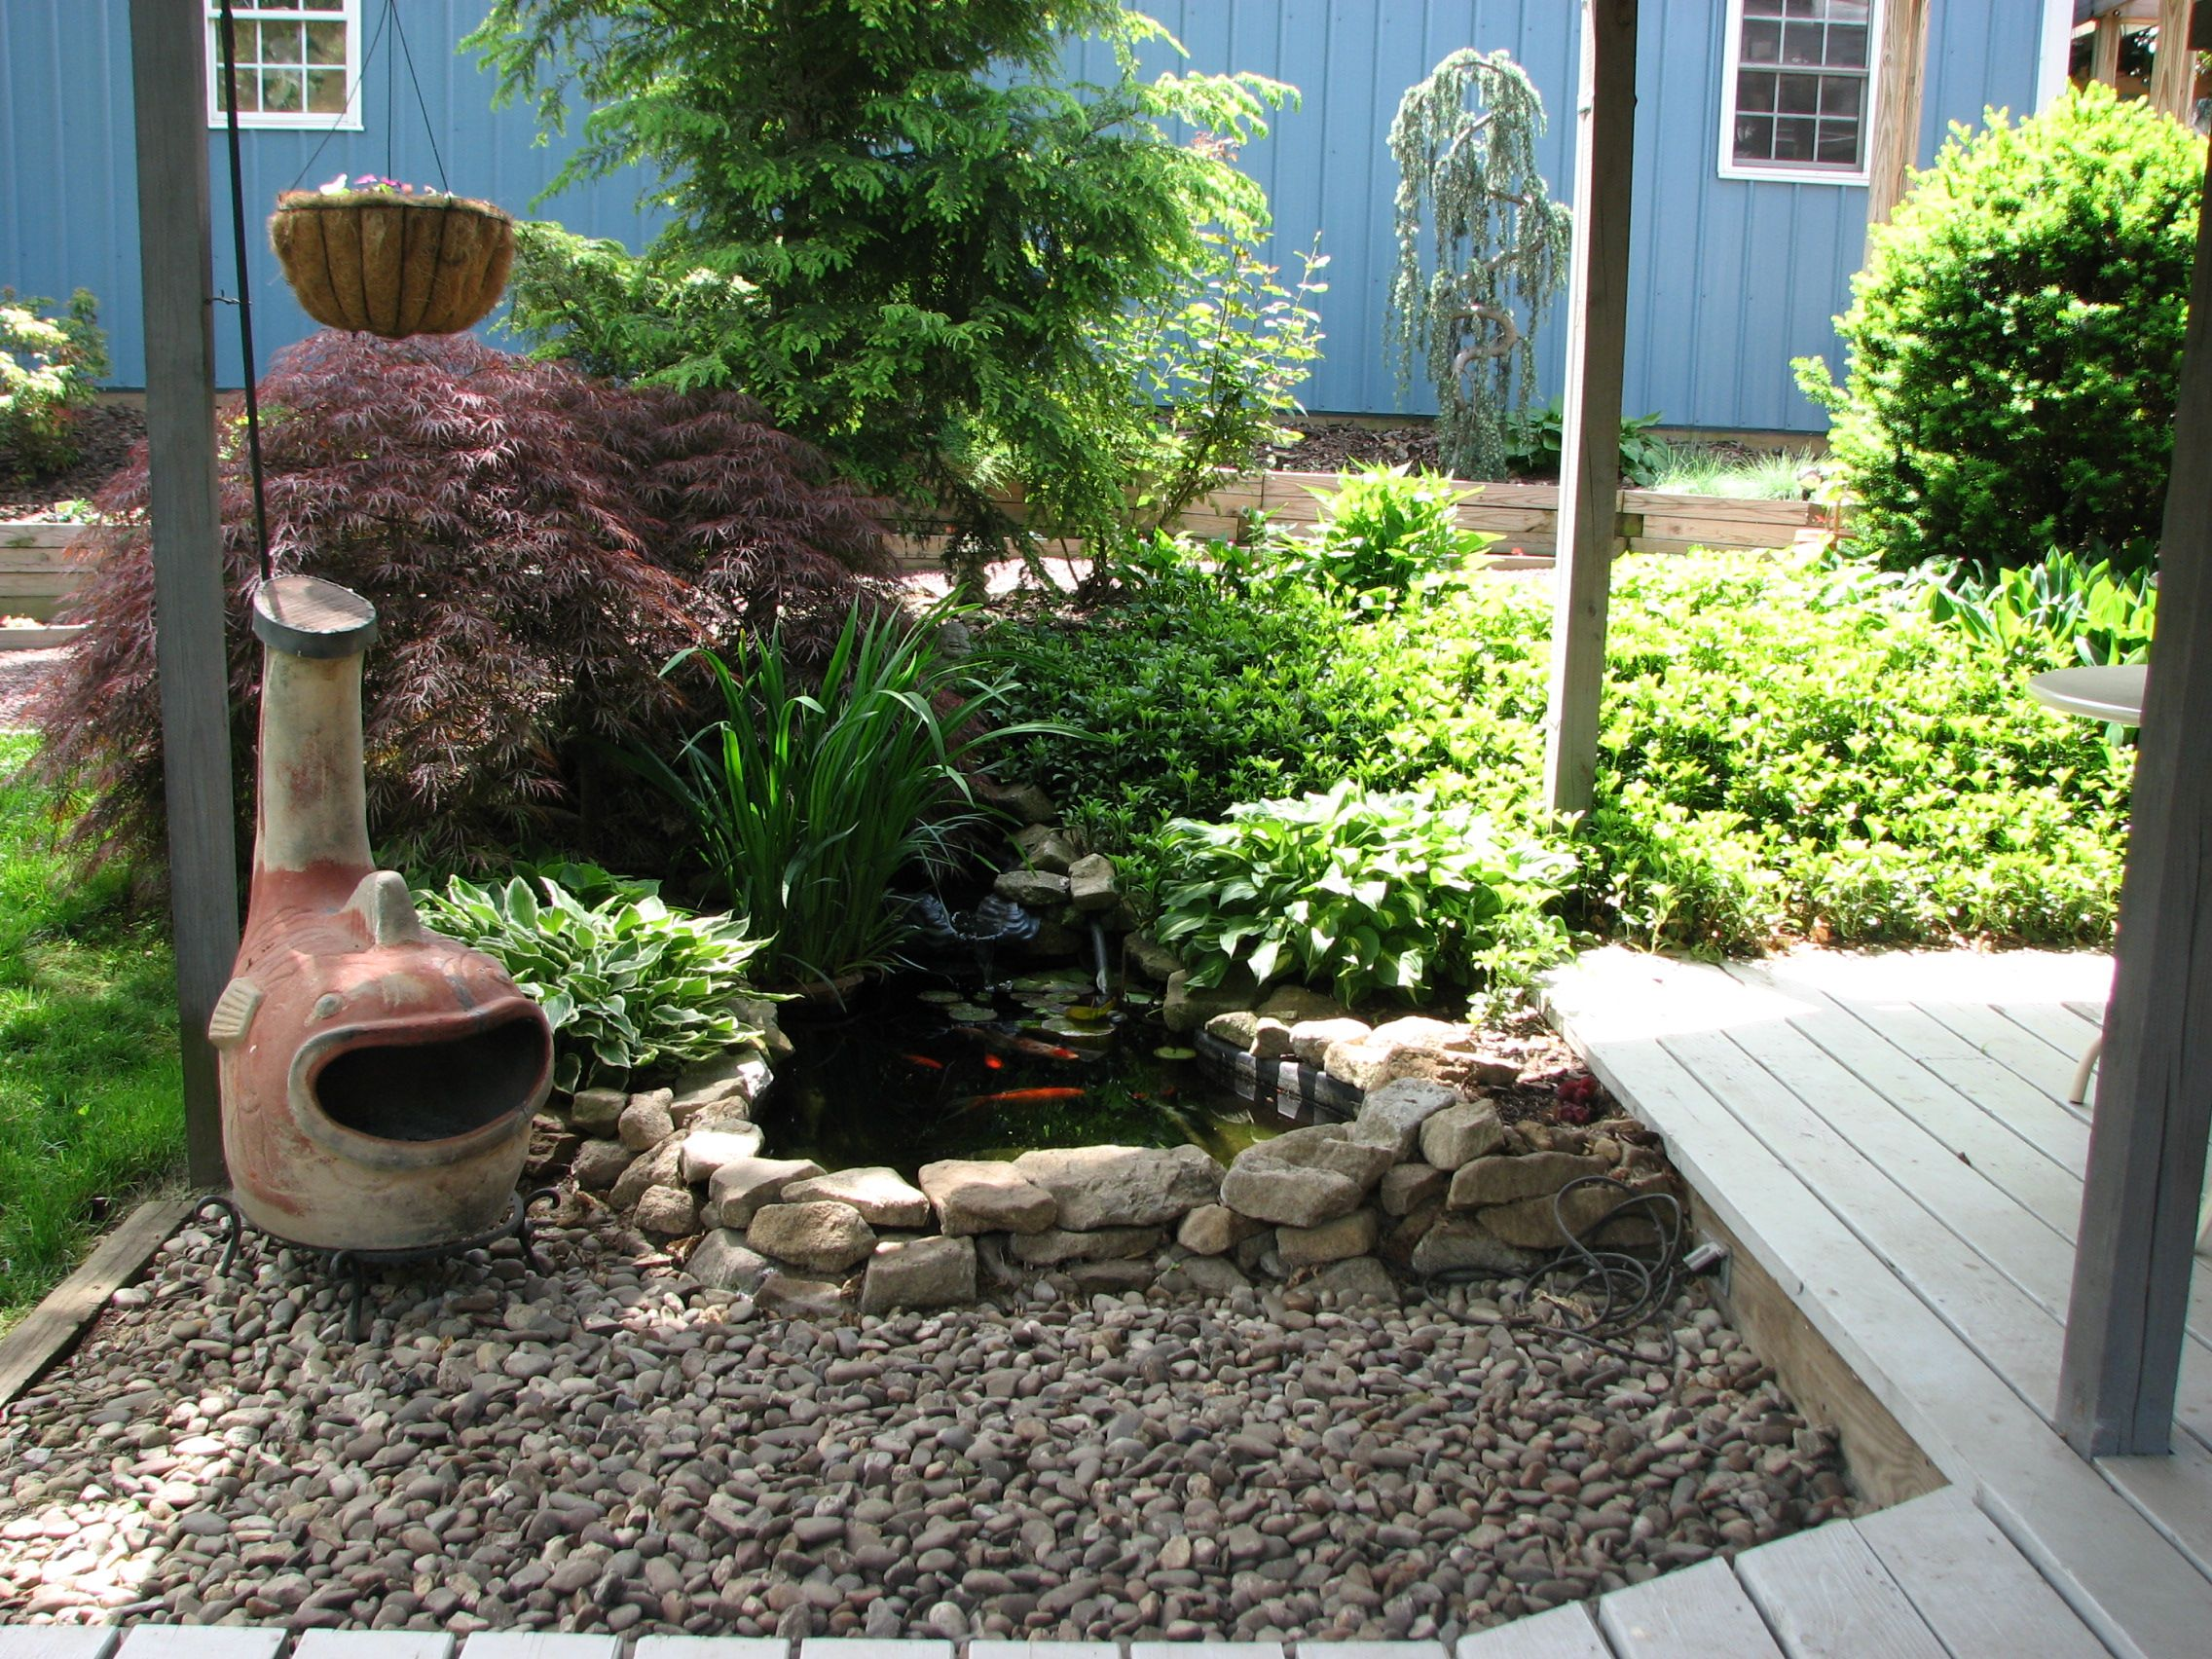 Fish pond designs pictures - Small Fish Pond Landscape Area You Can See The Small Fish Pond